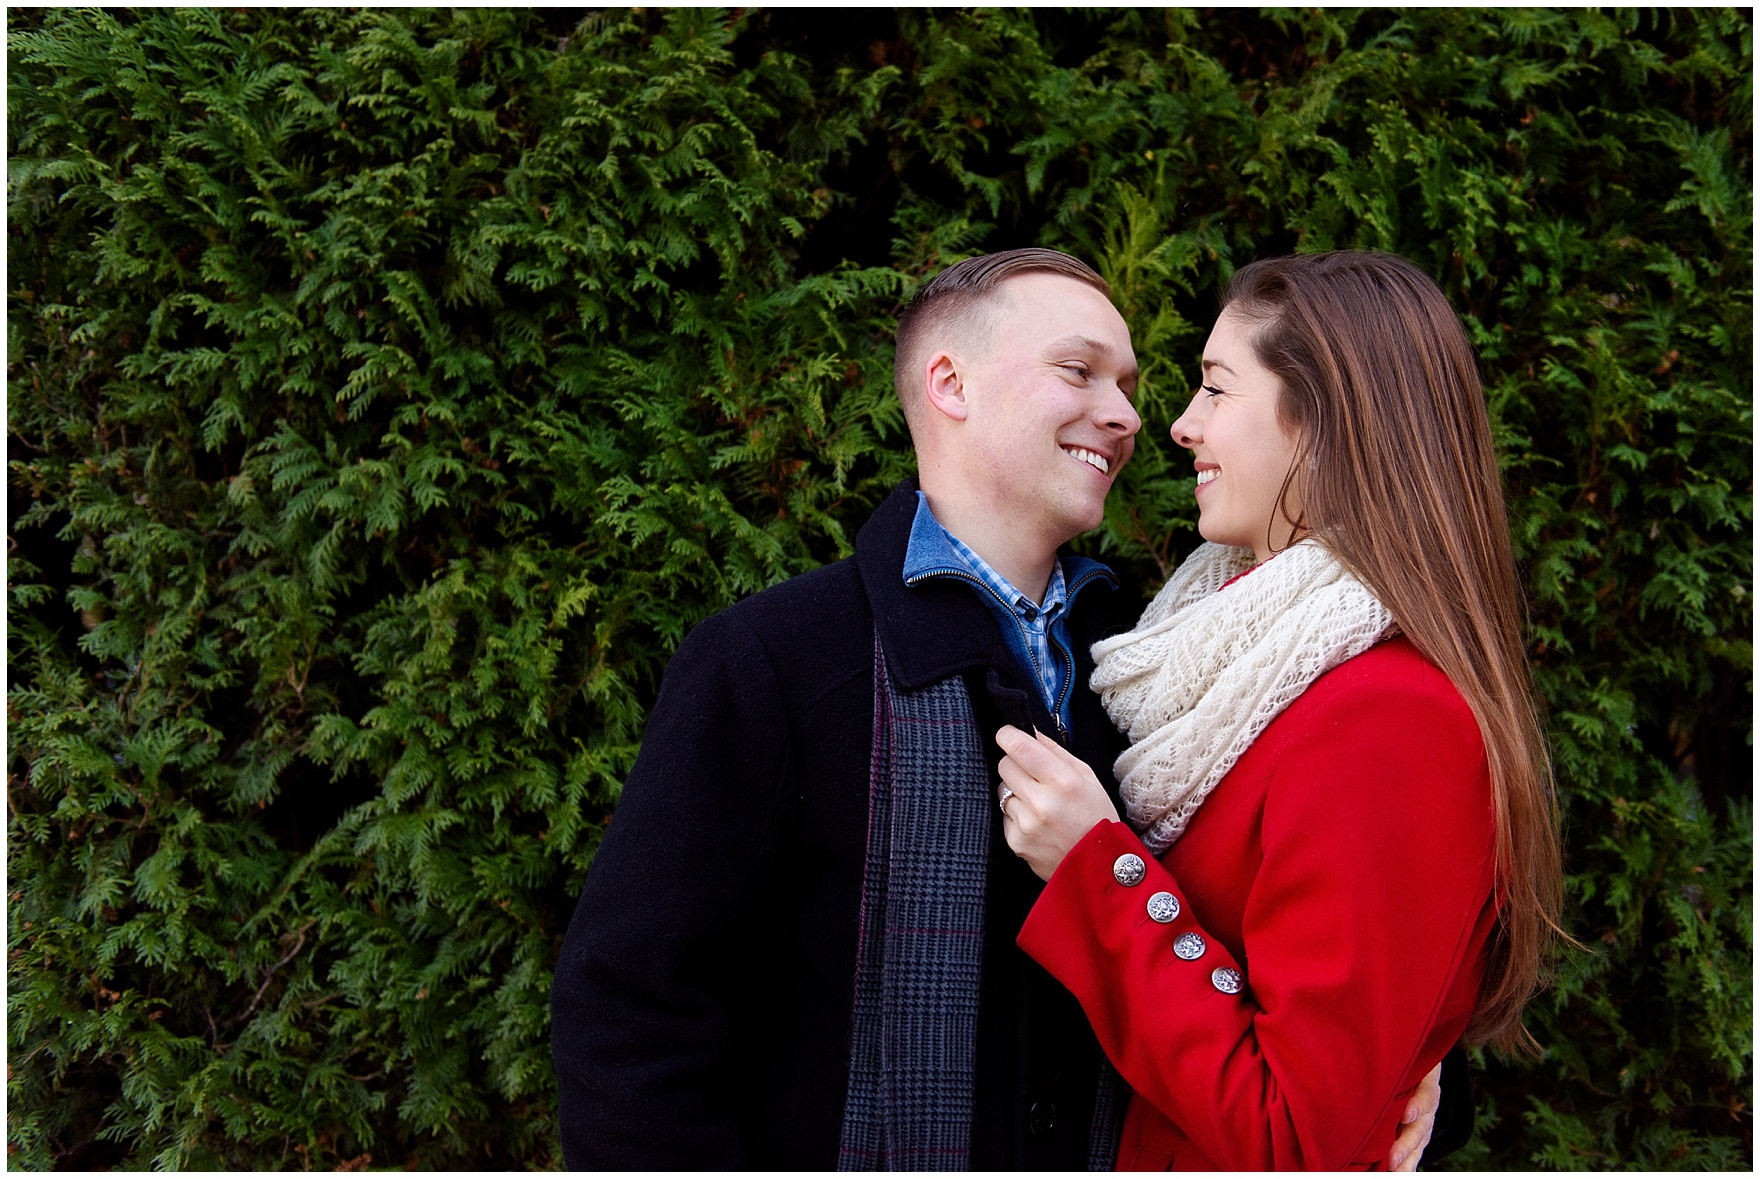 A couple embraces at the Lurie Gardens during an Art Institute of Chicago engagement photography session.